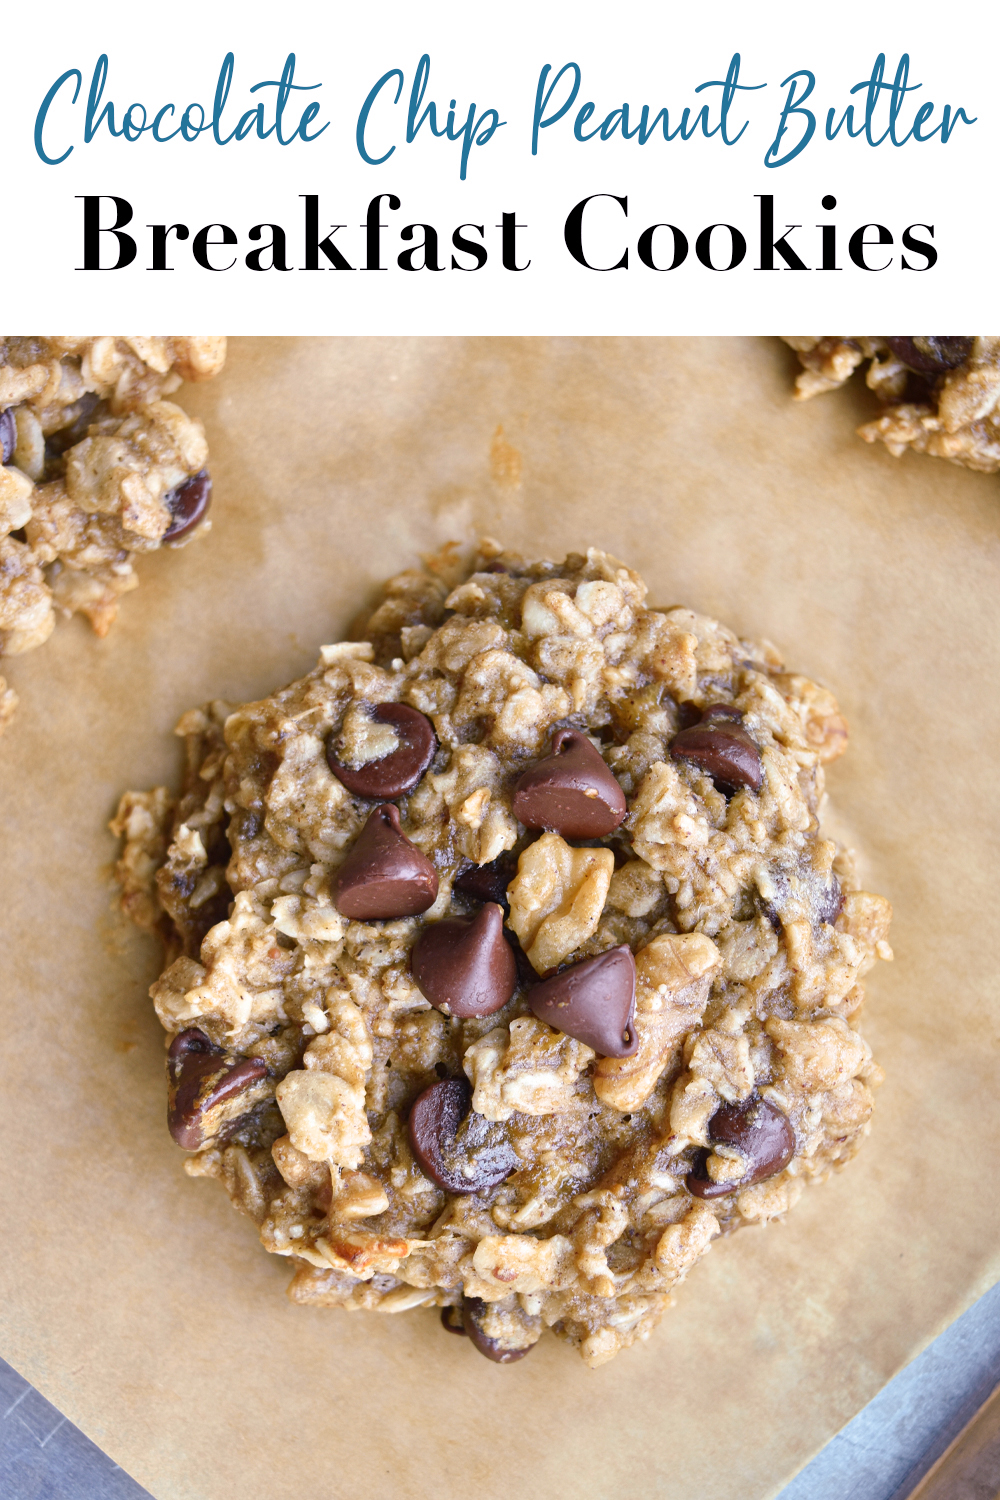 Chocolate Chip Peanut Butter Breakfast Cookies